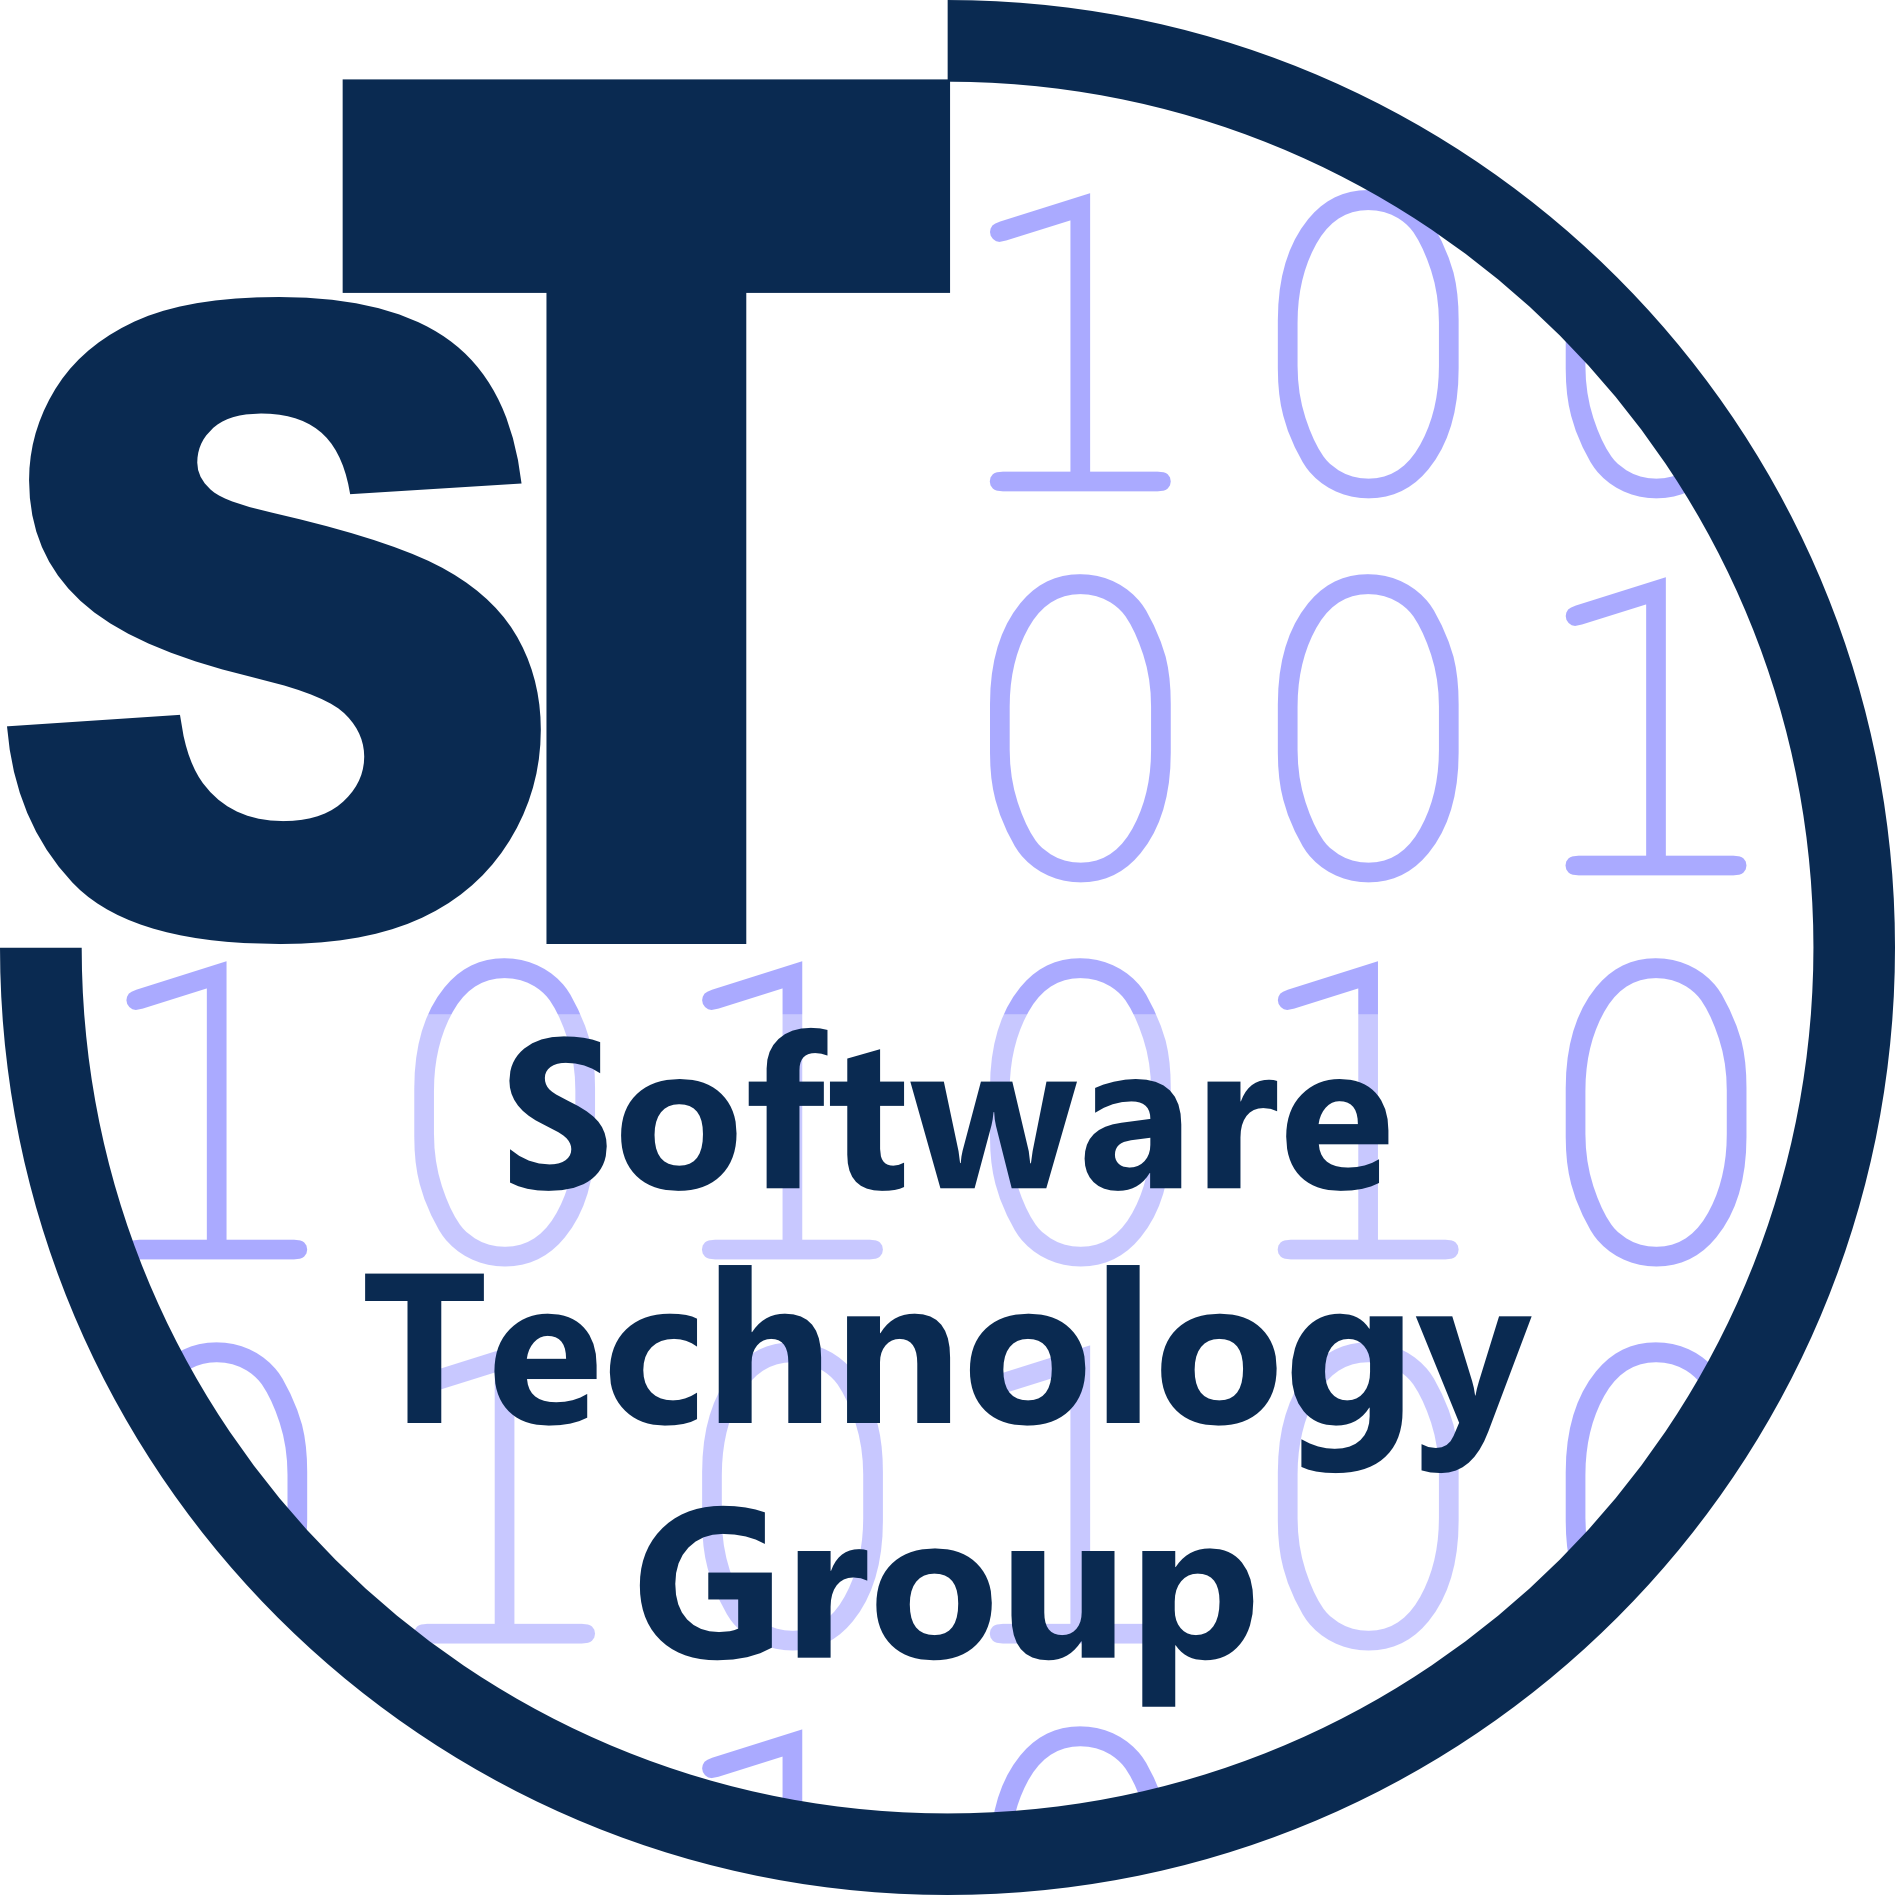 Logo of the Software Technology Group